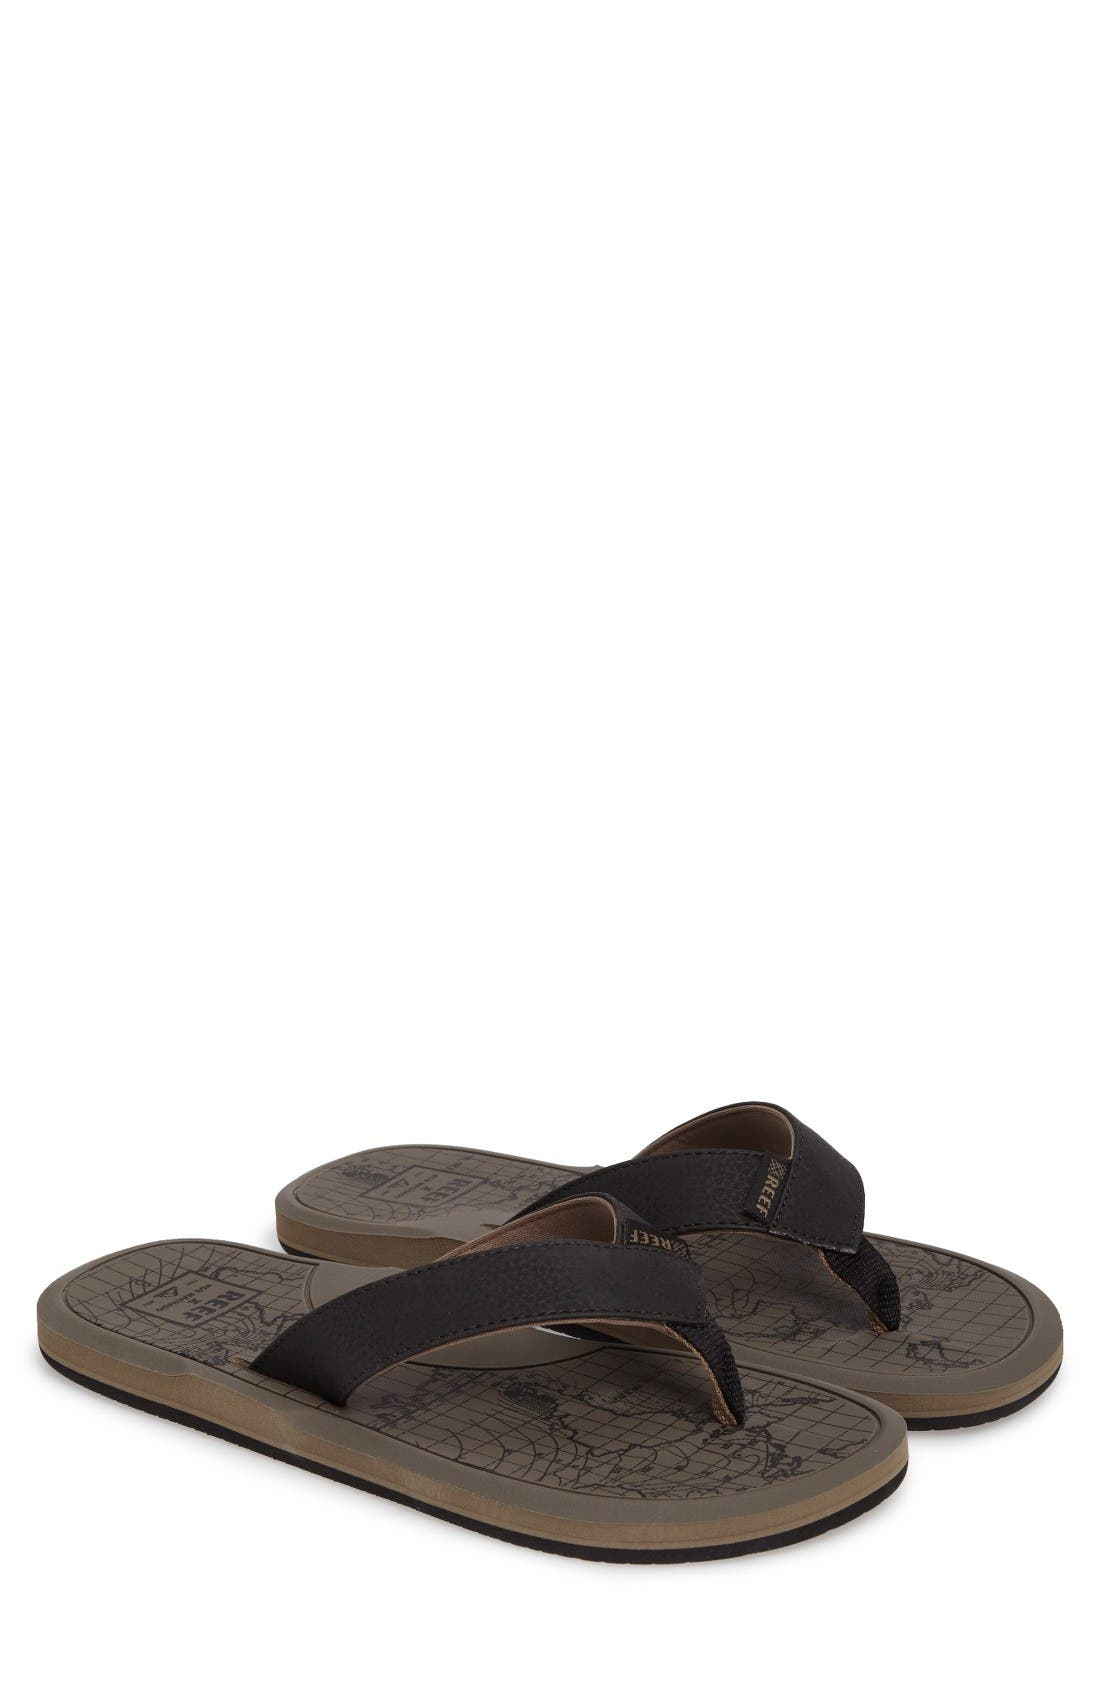 Main Image - Reef Machado Flip Flop (Men)